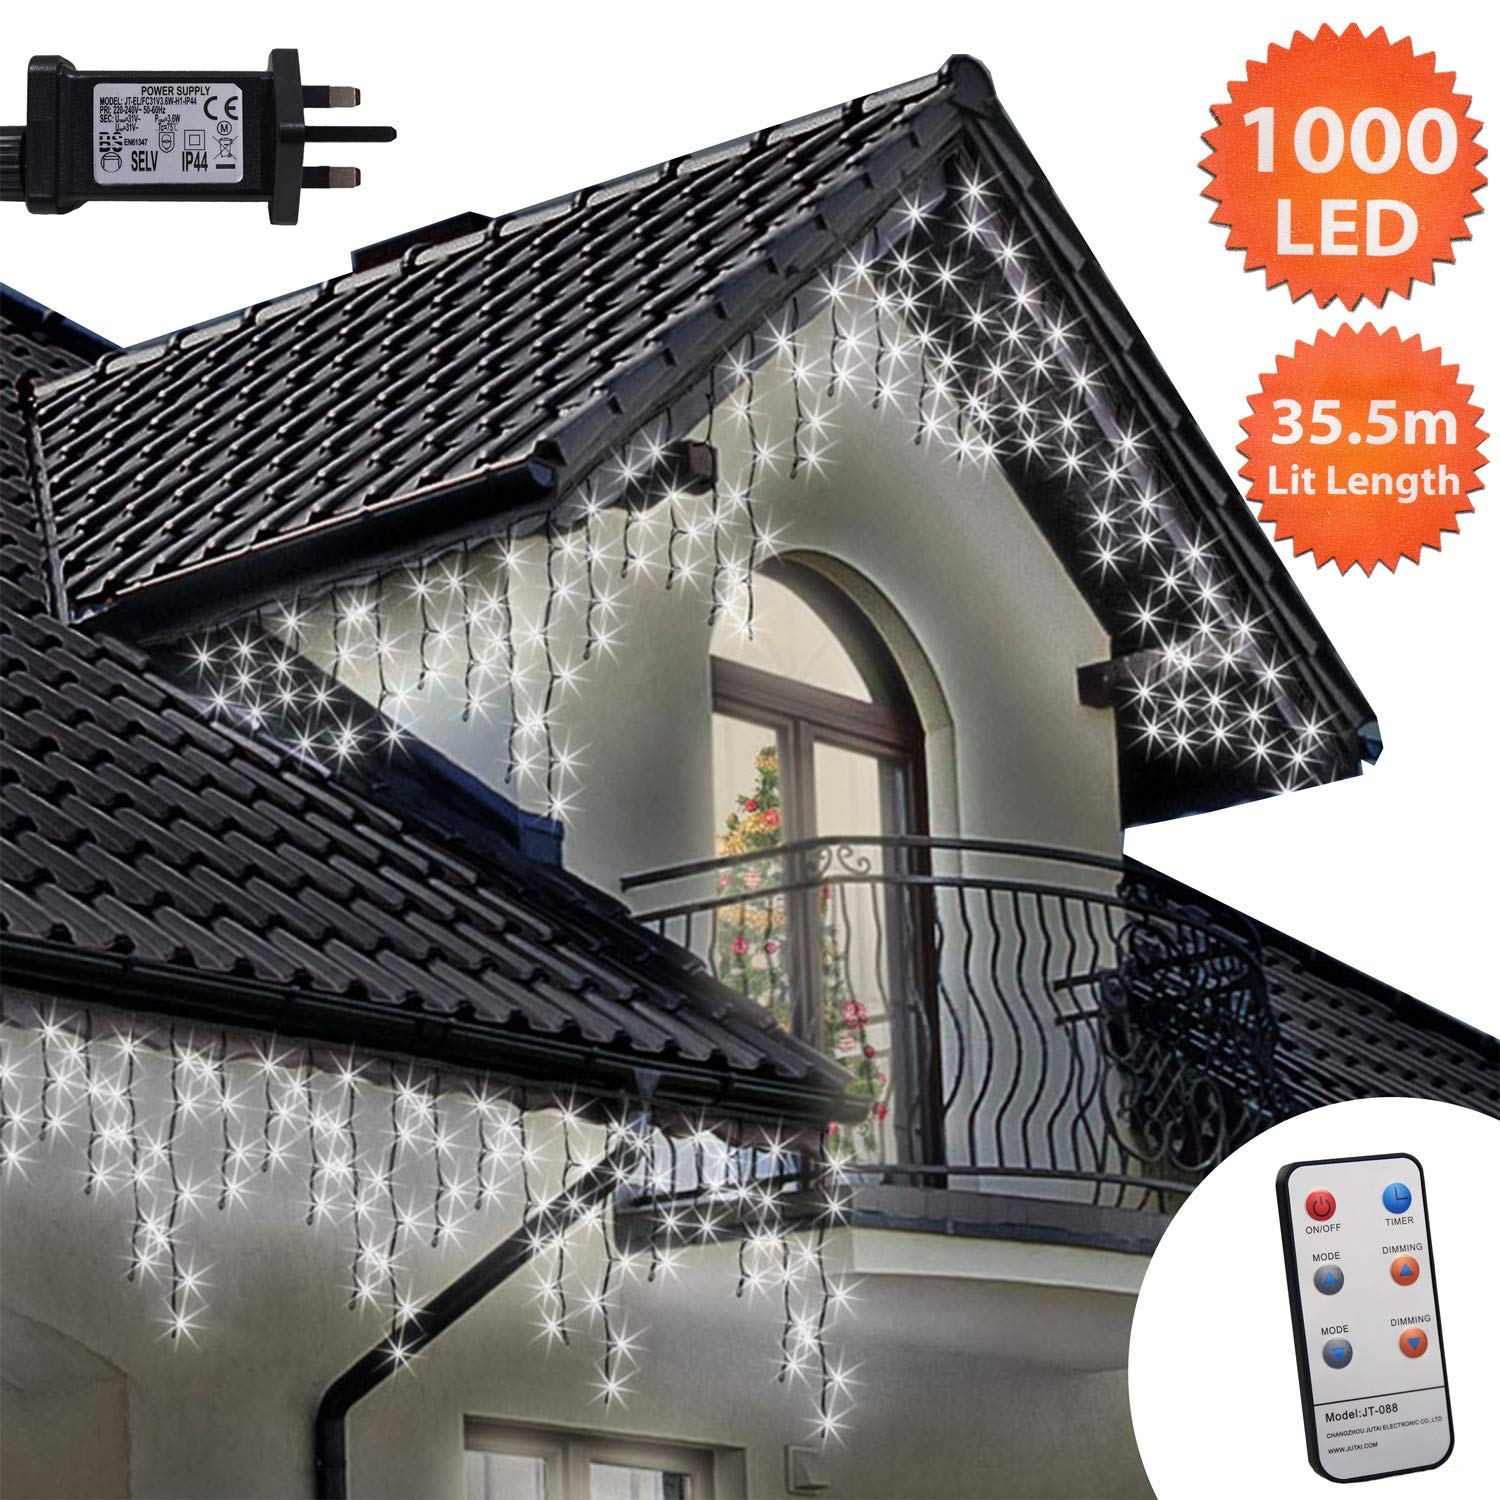 04a3f5ef7e05 Icicle Lights Remote 1000 LED 35.5m Bright/Cool White Outdoor Christmas  Lights Indoor String Fairy Lights Timer Memory Mains Powered 116ft Lit  Length ...